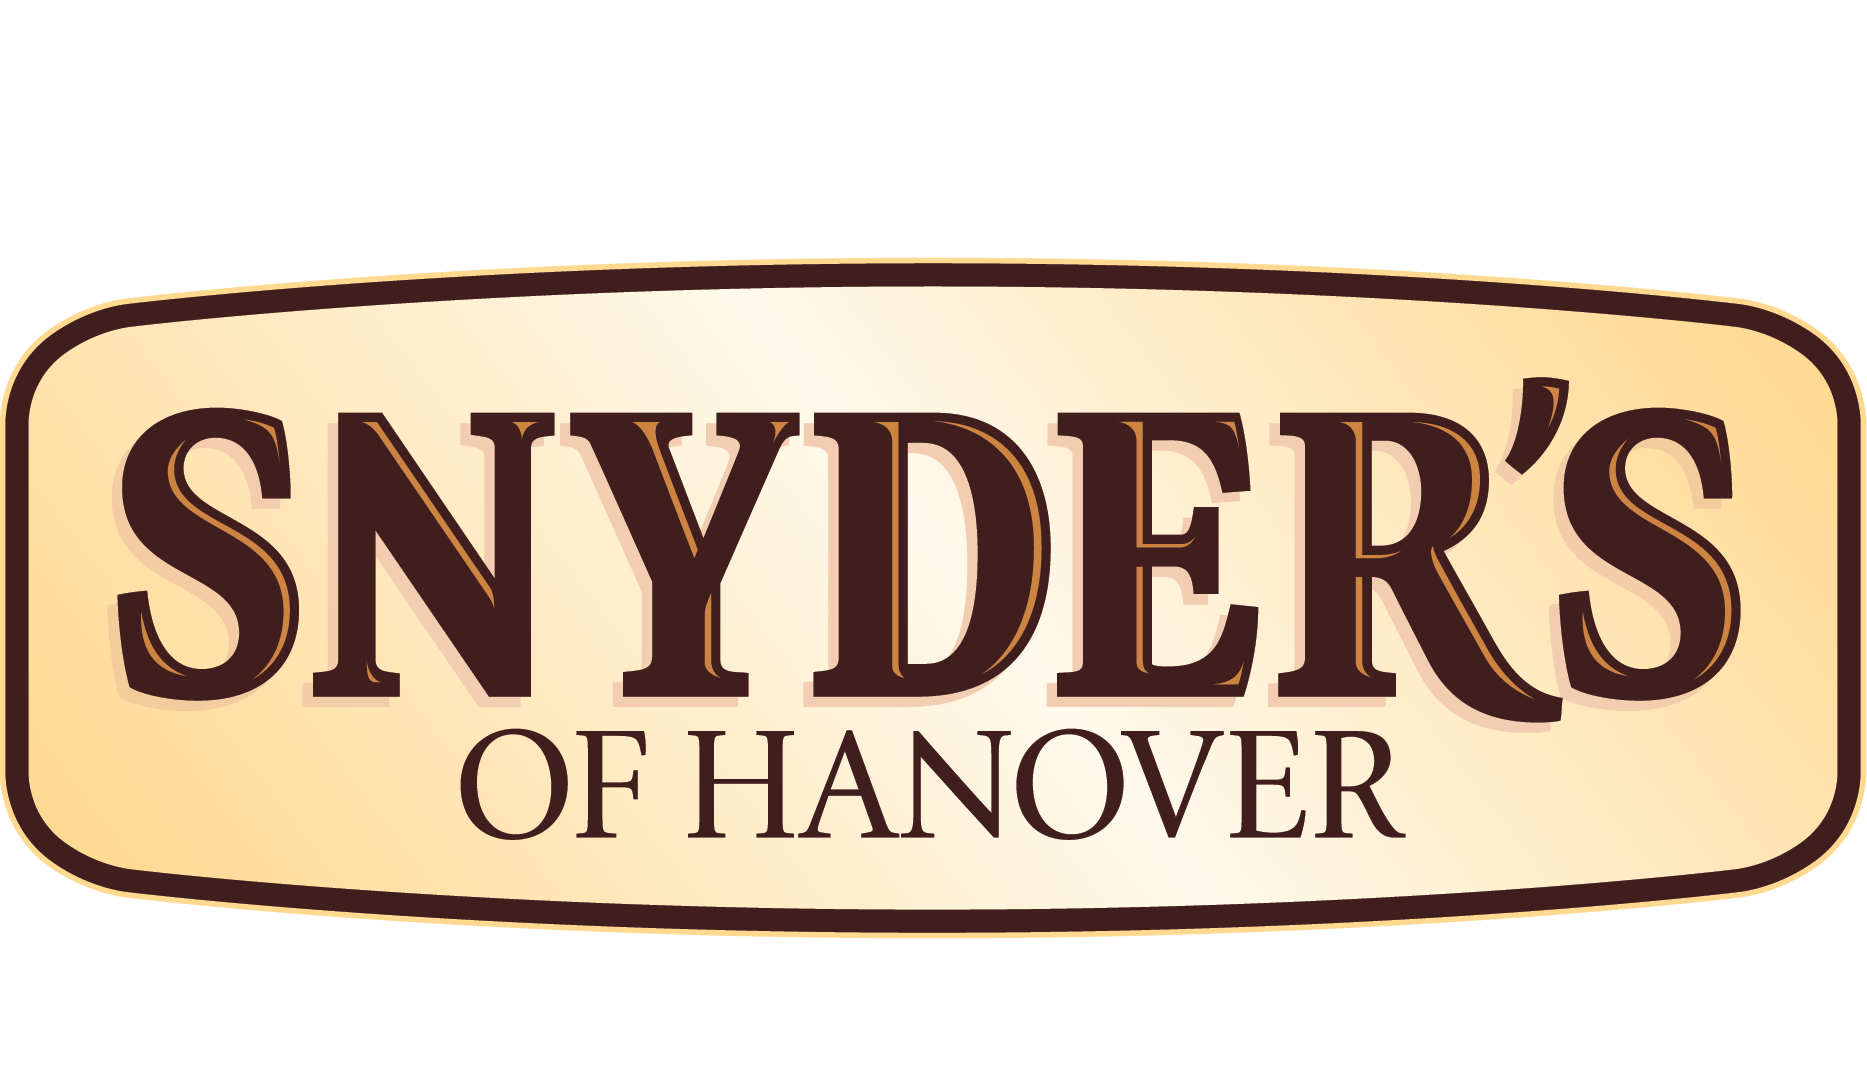 Home - Snyder's of Hanover